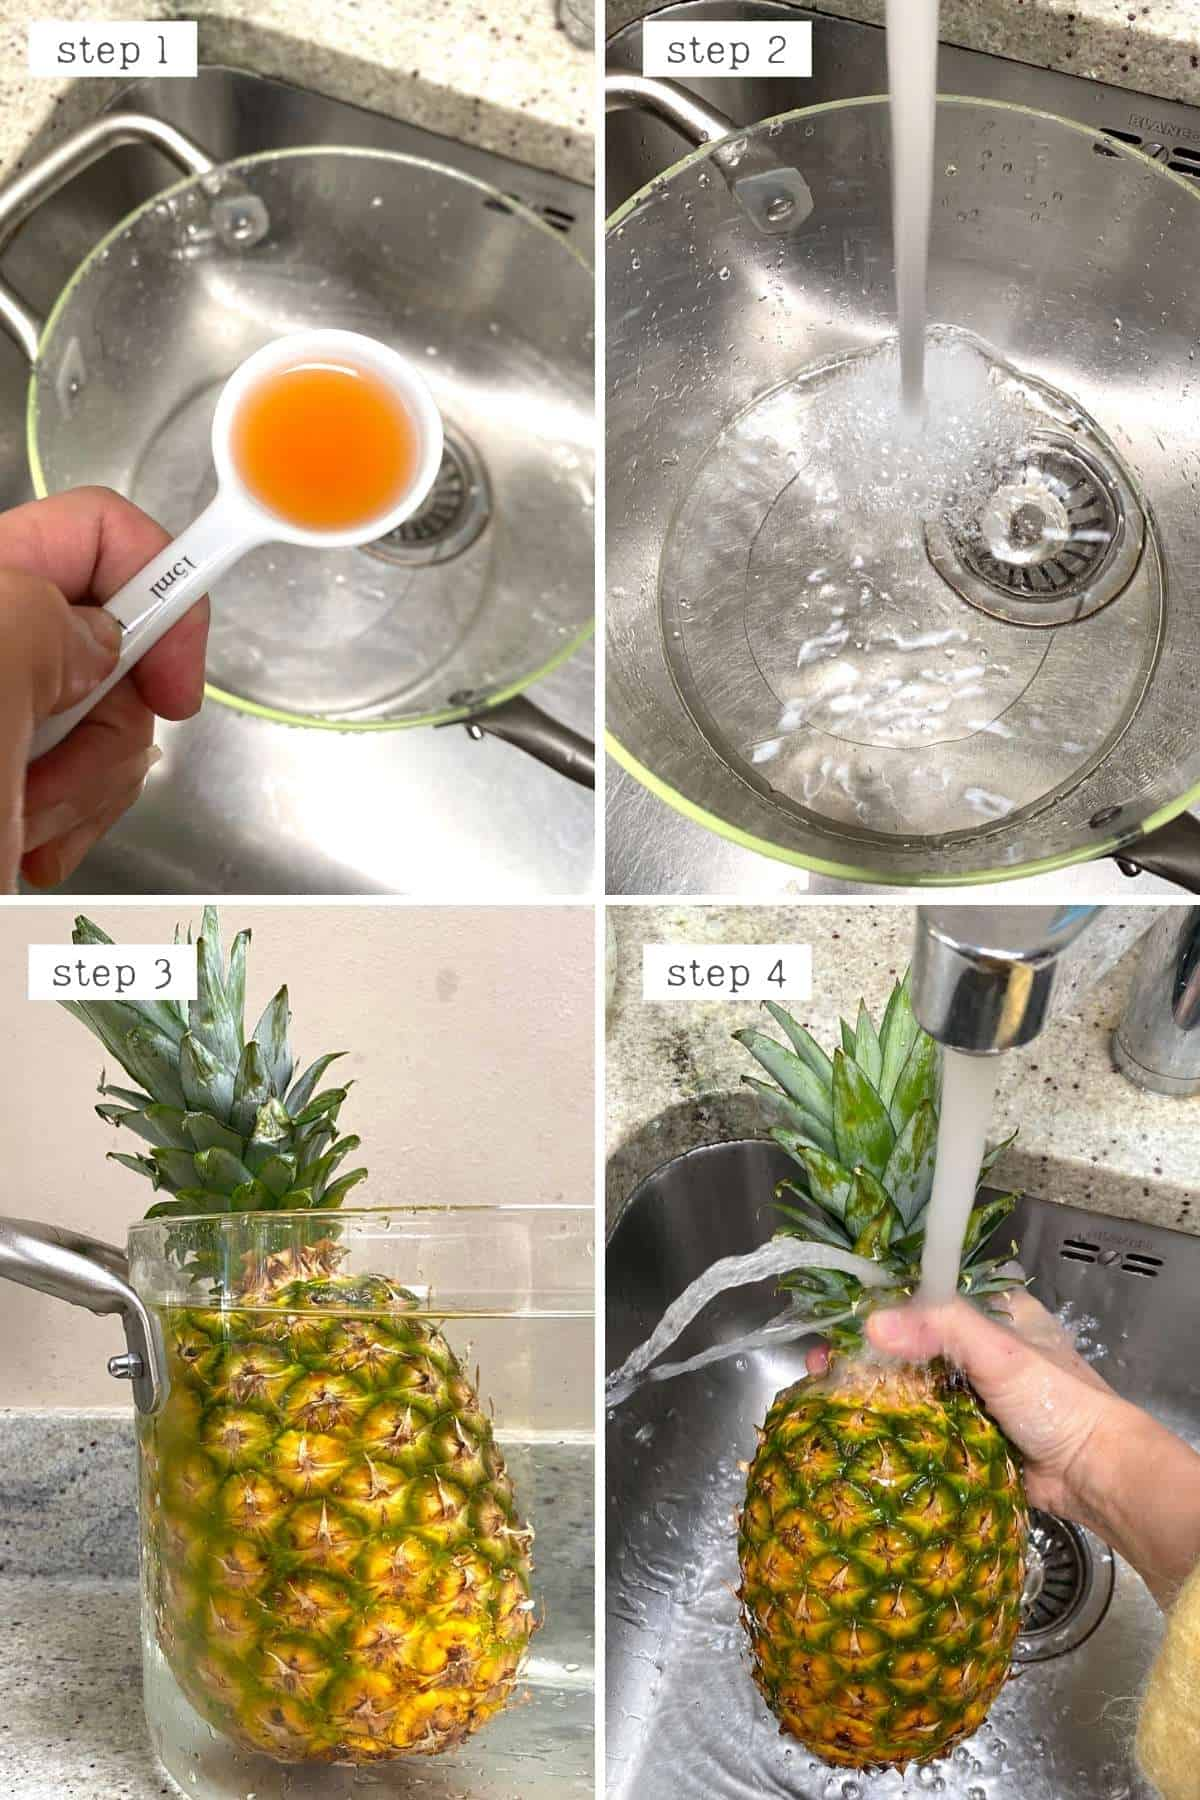 Soaking pineapple in water